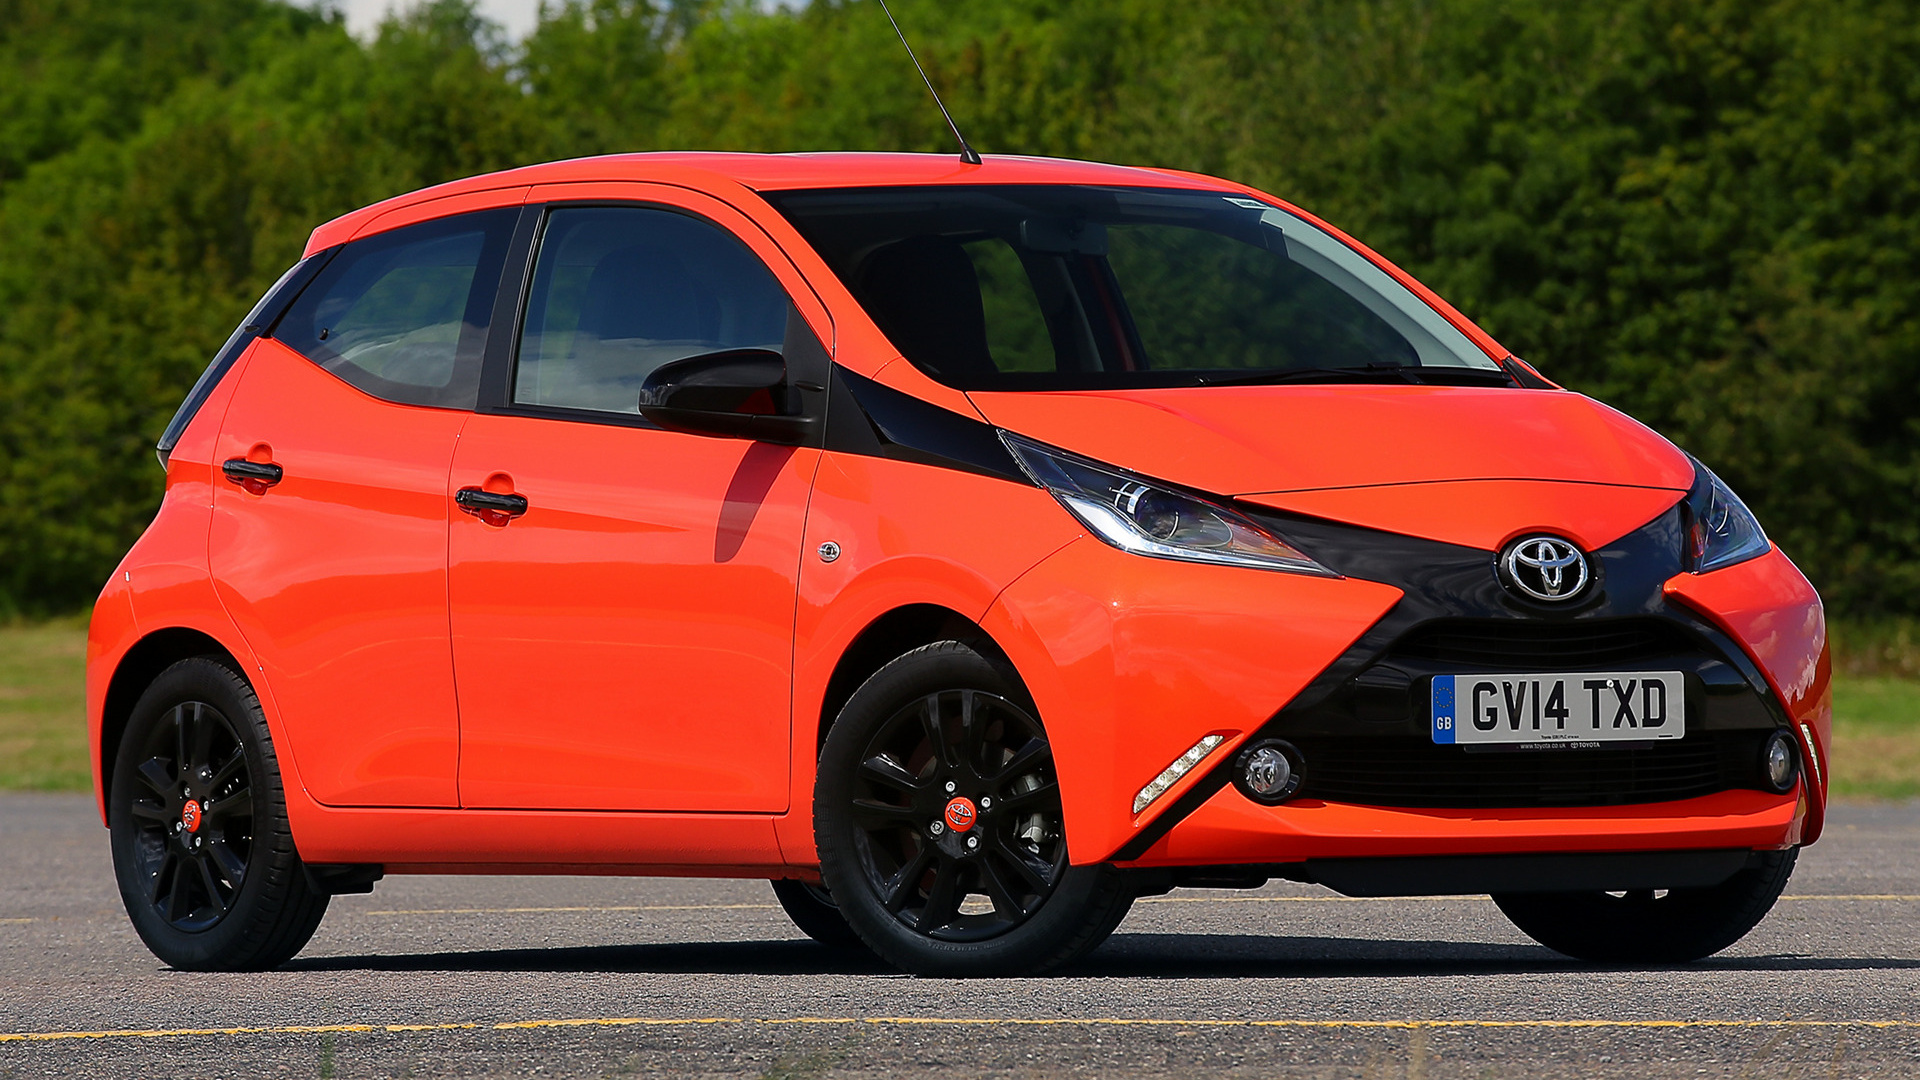 2014 toyota aygo xcite 5door uk wallpapers and hd